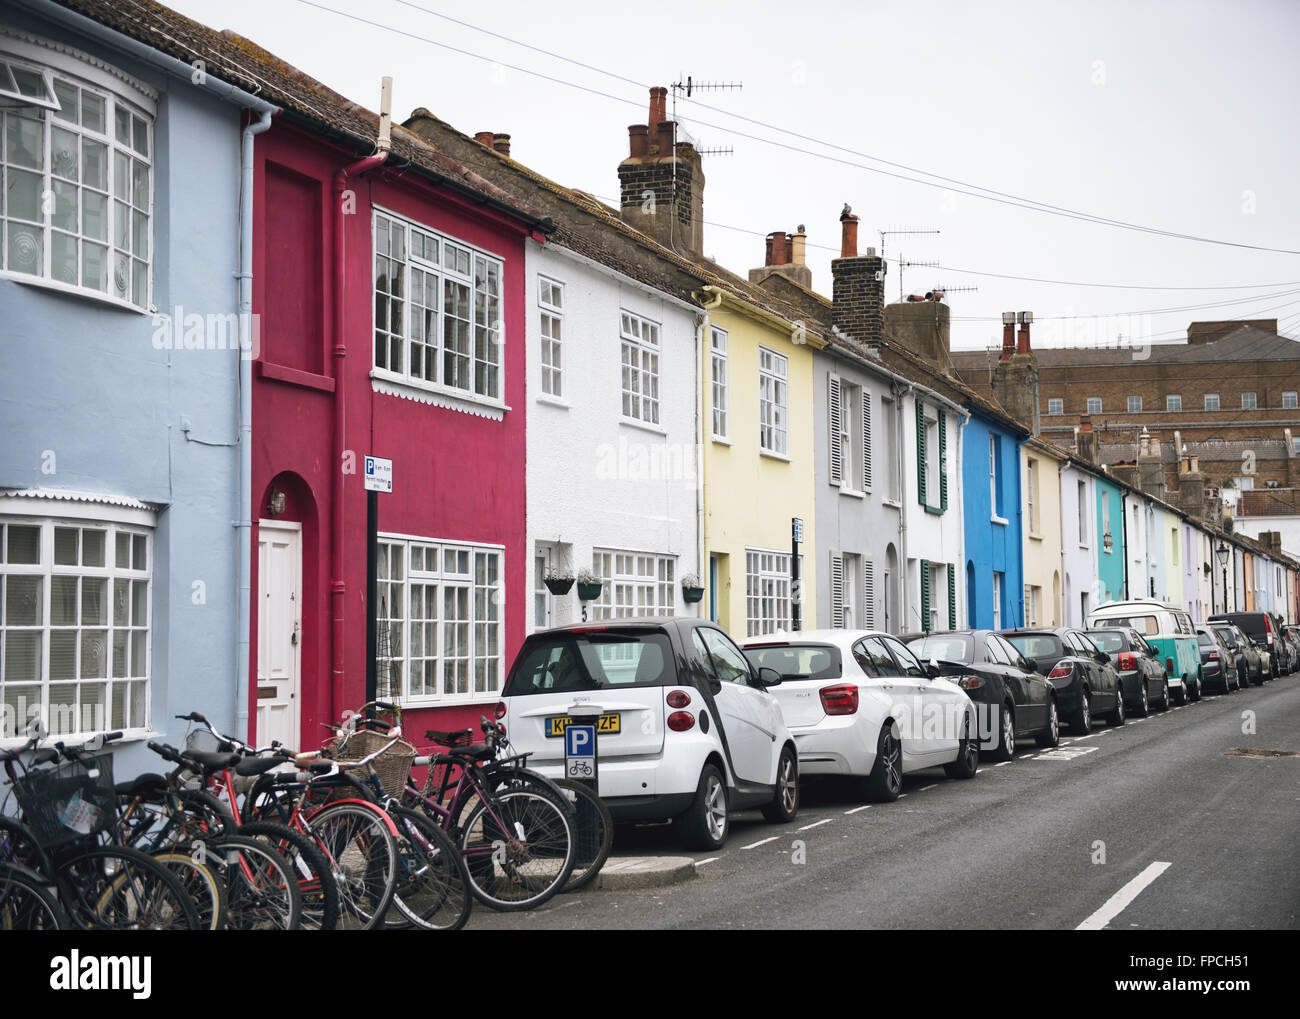 Car Parking on Street Side Fronting Assorted Colors Houses Stock ...